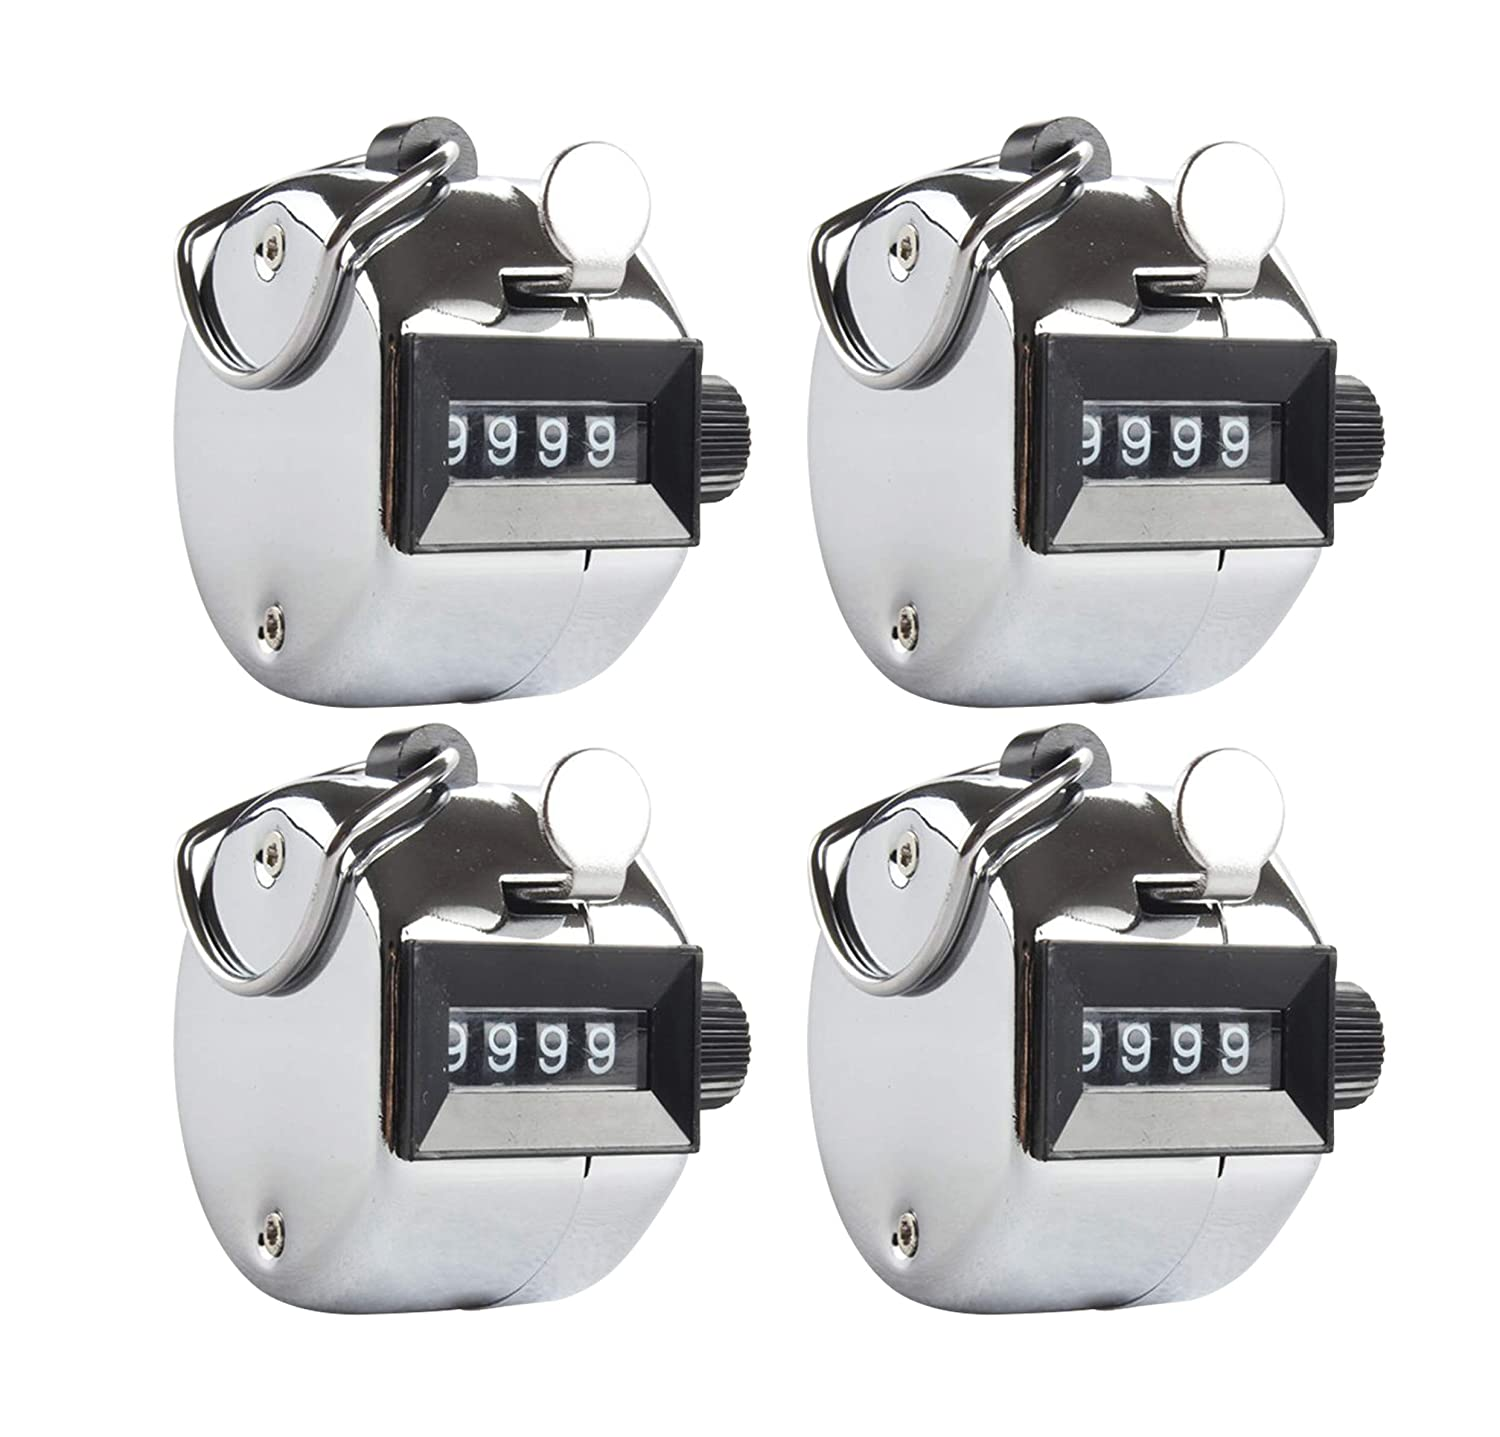 Aonal 4pack Tally Counter Handheld - 4 Digit Number Lap Counter Manual Mechanical Clicker with Finger Ring Sliver 102-LC-1